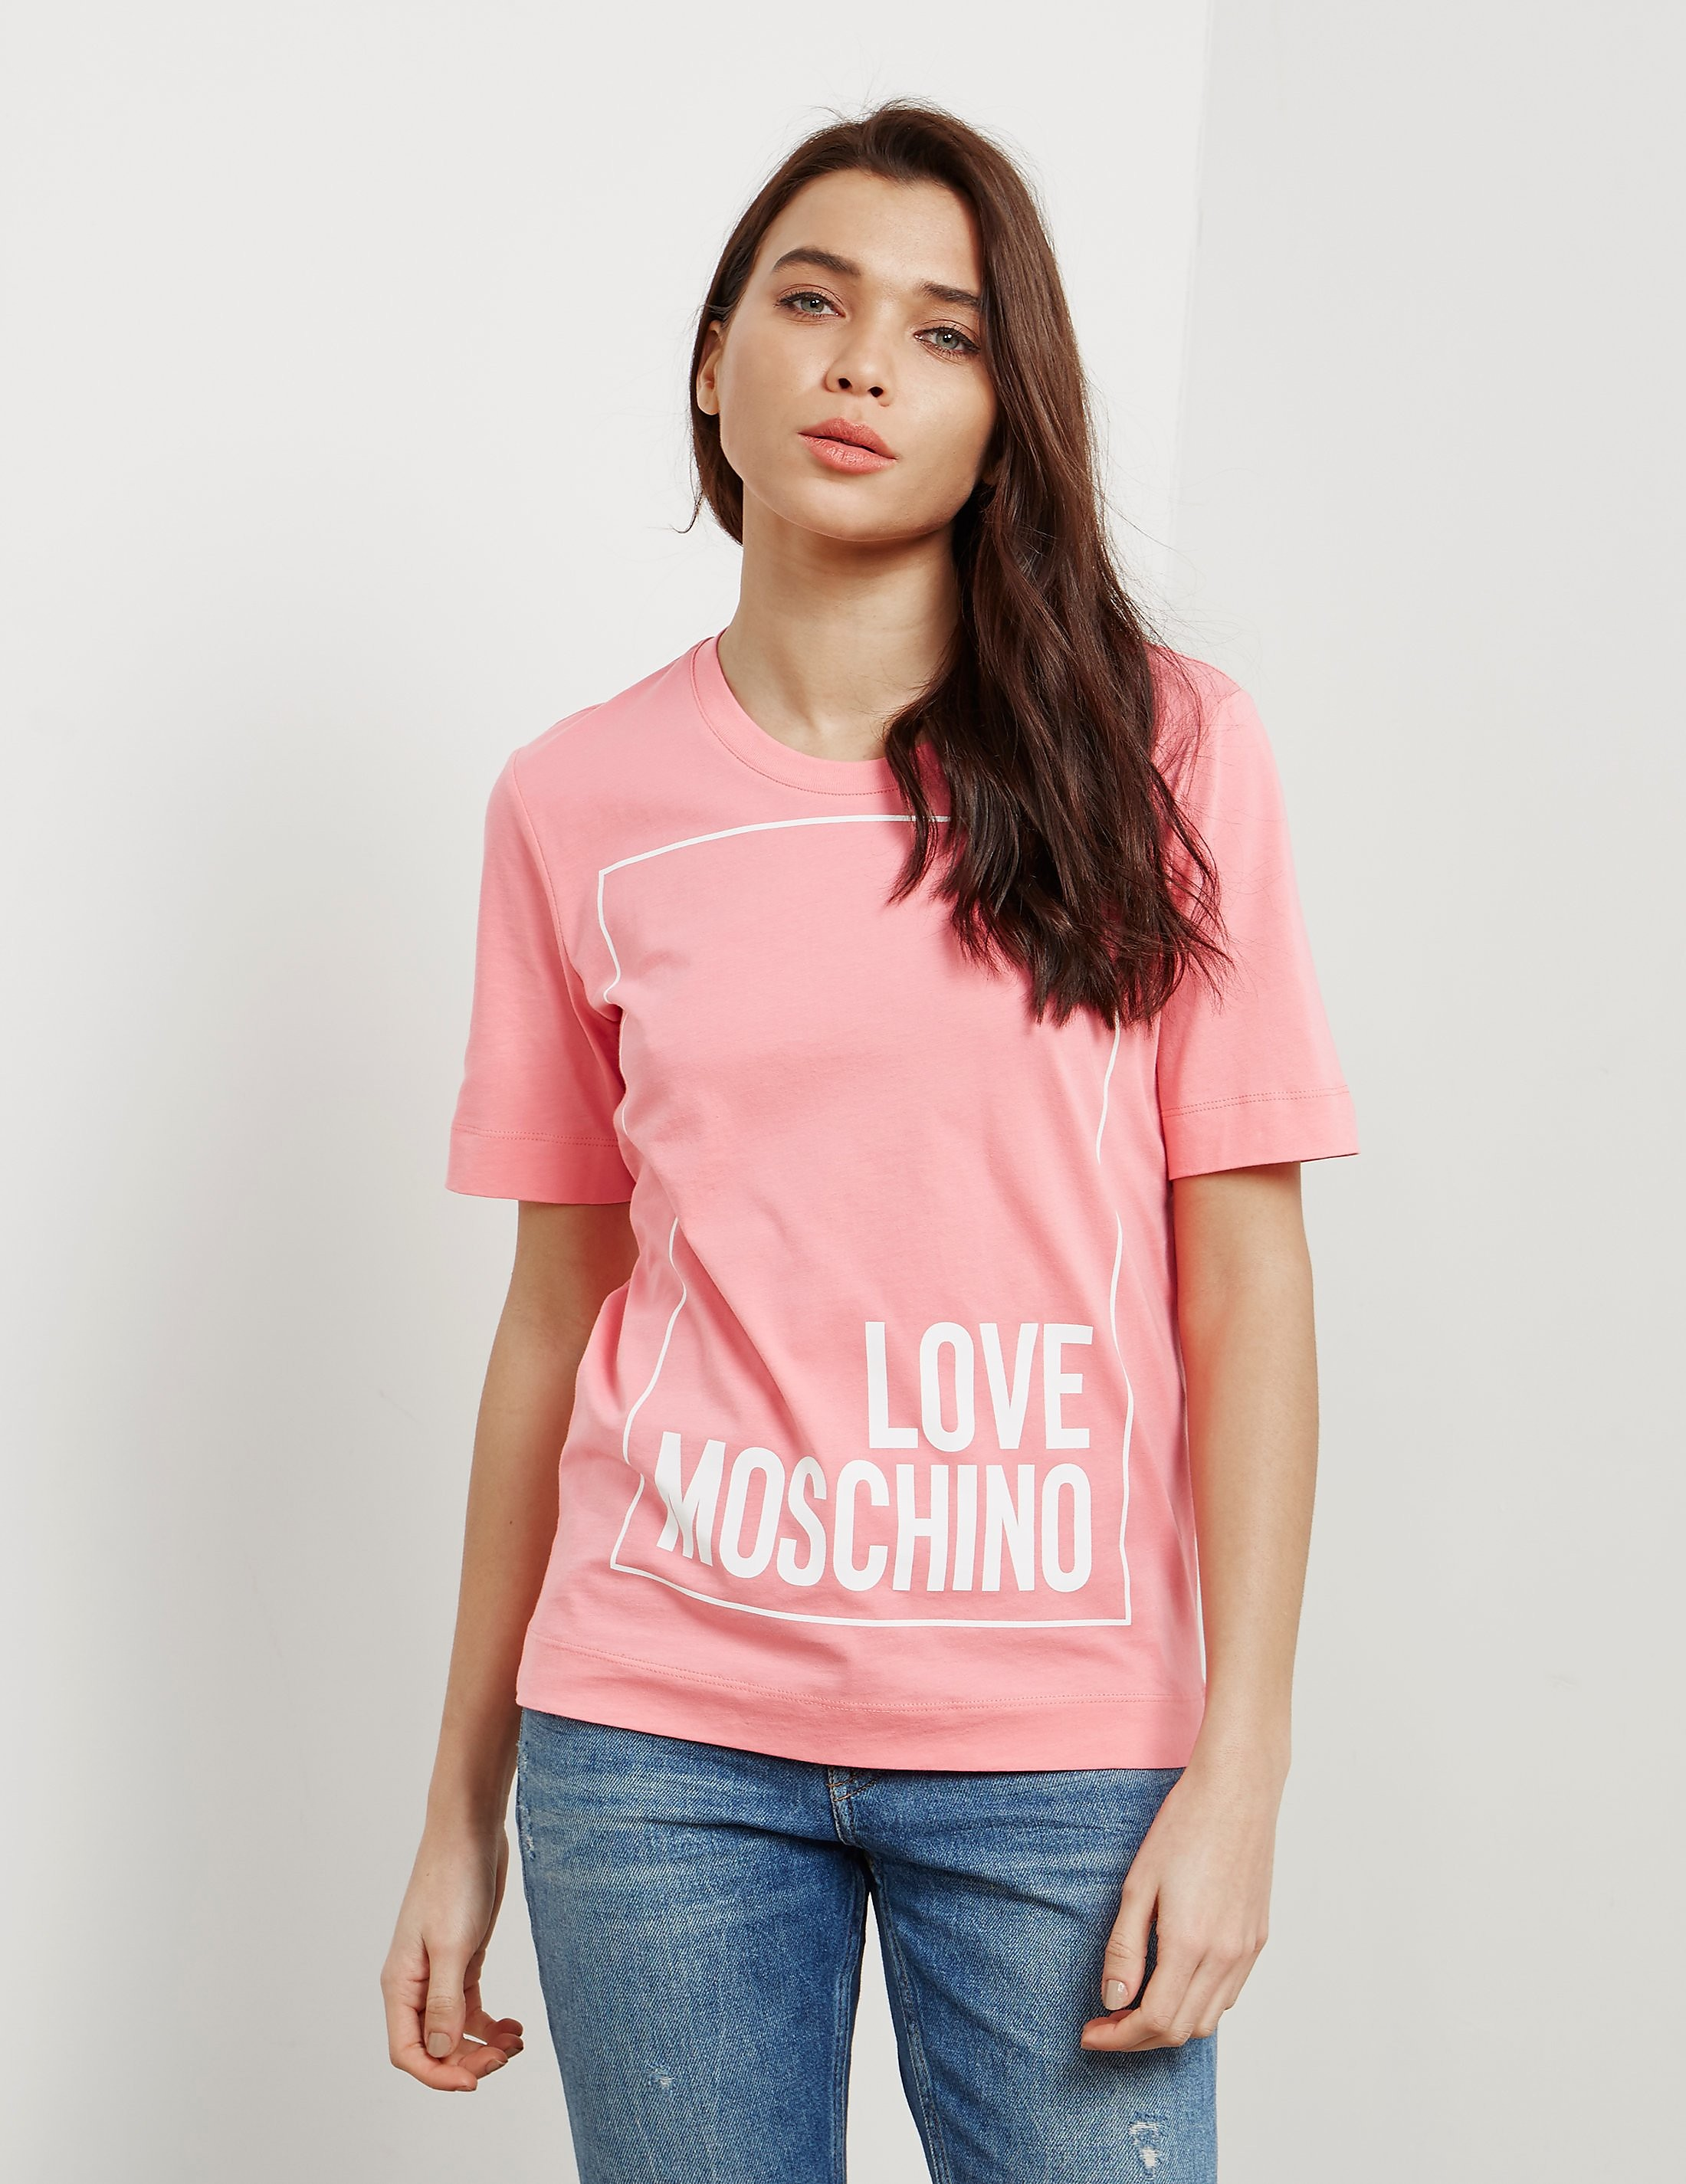 Love Moschino Square Short Sleeve T-Shirt